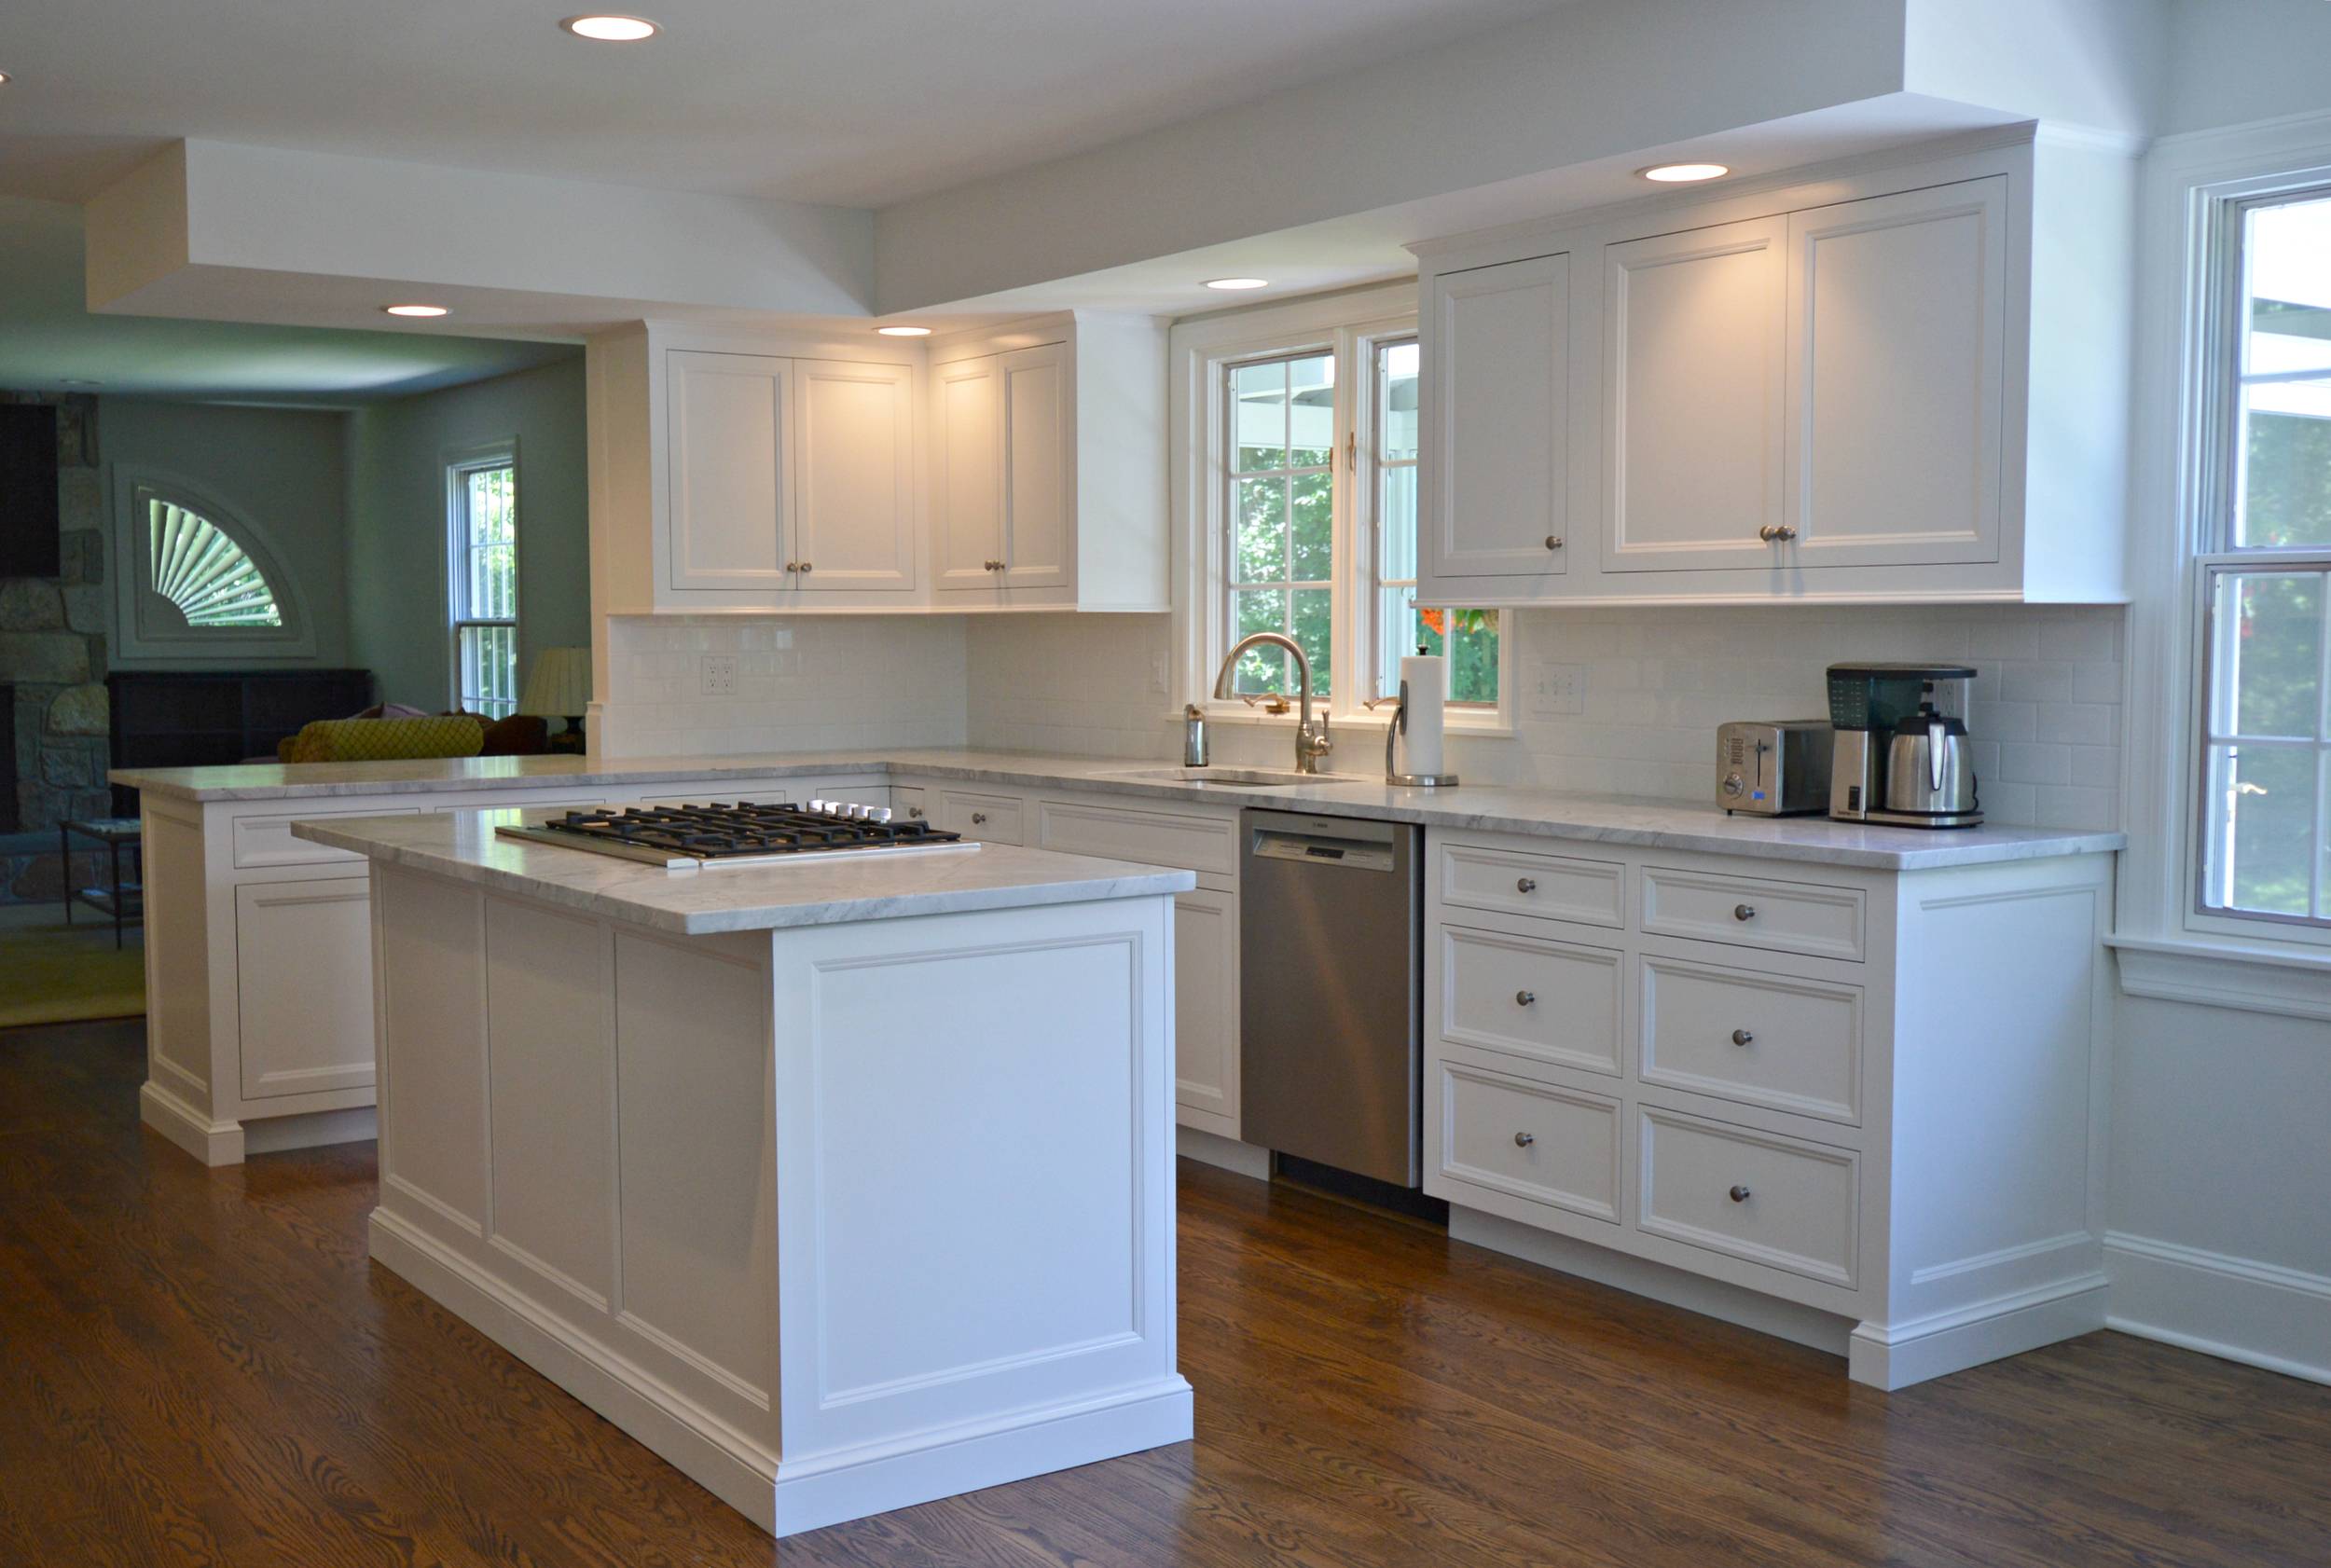 Classic White Kitchen Cabinets - Ackley Cabinet LLC